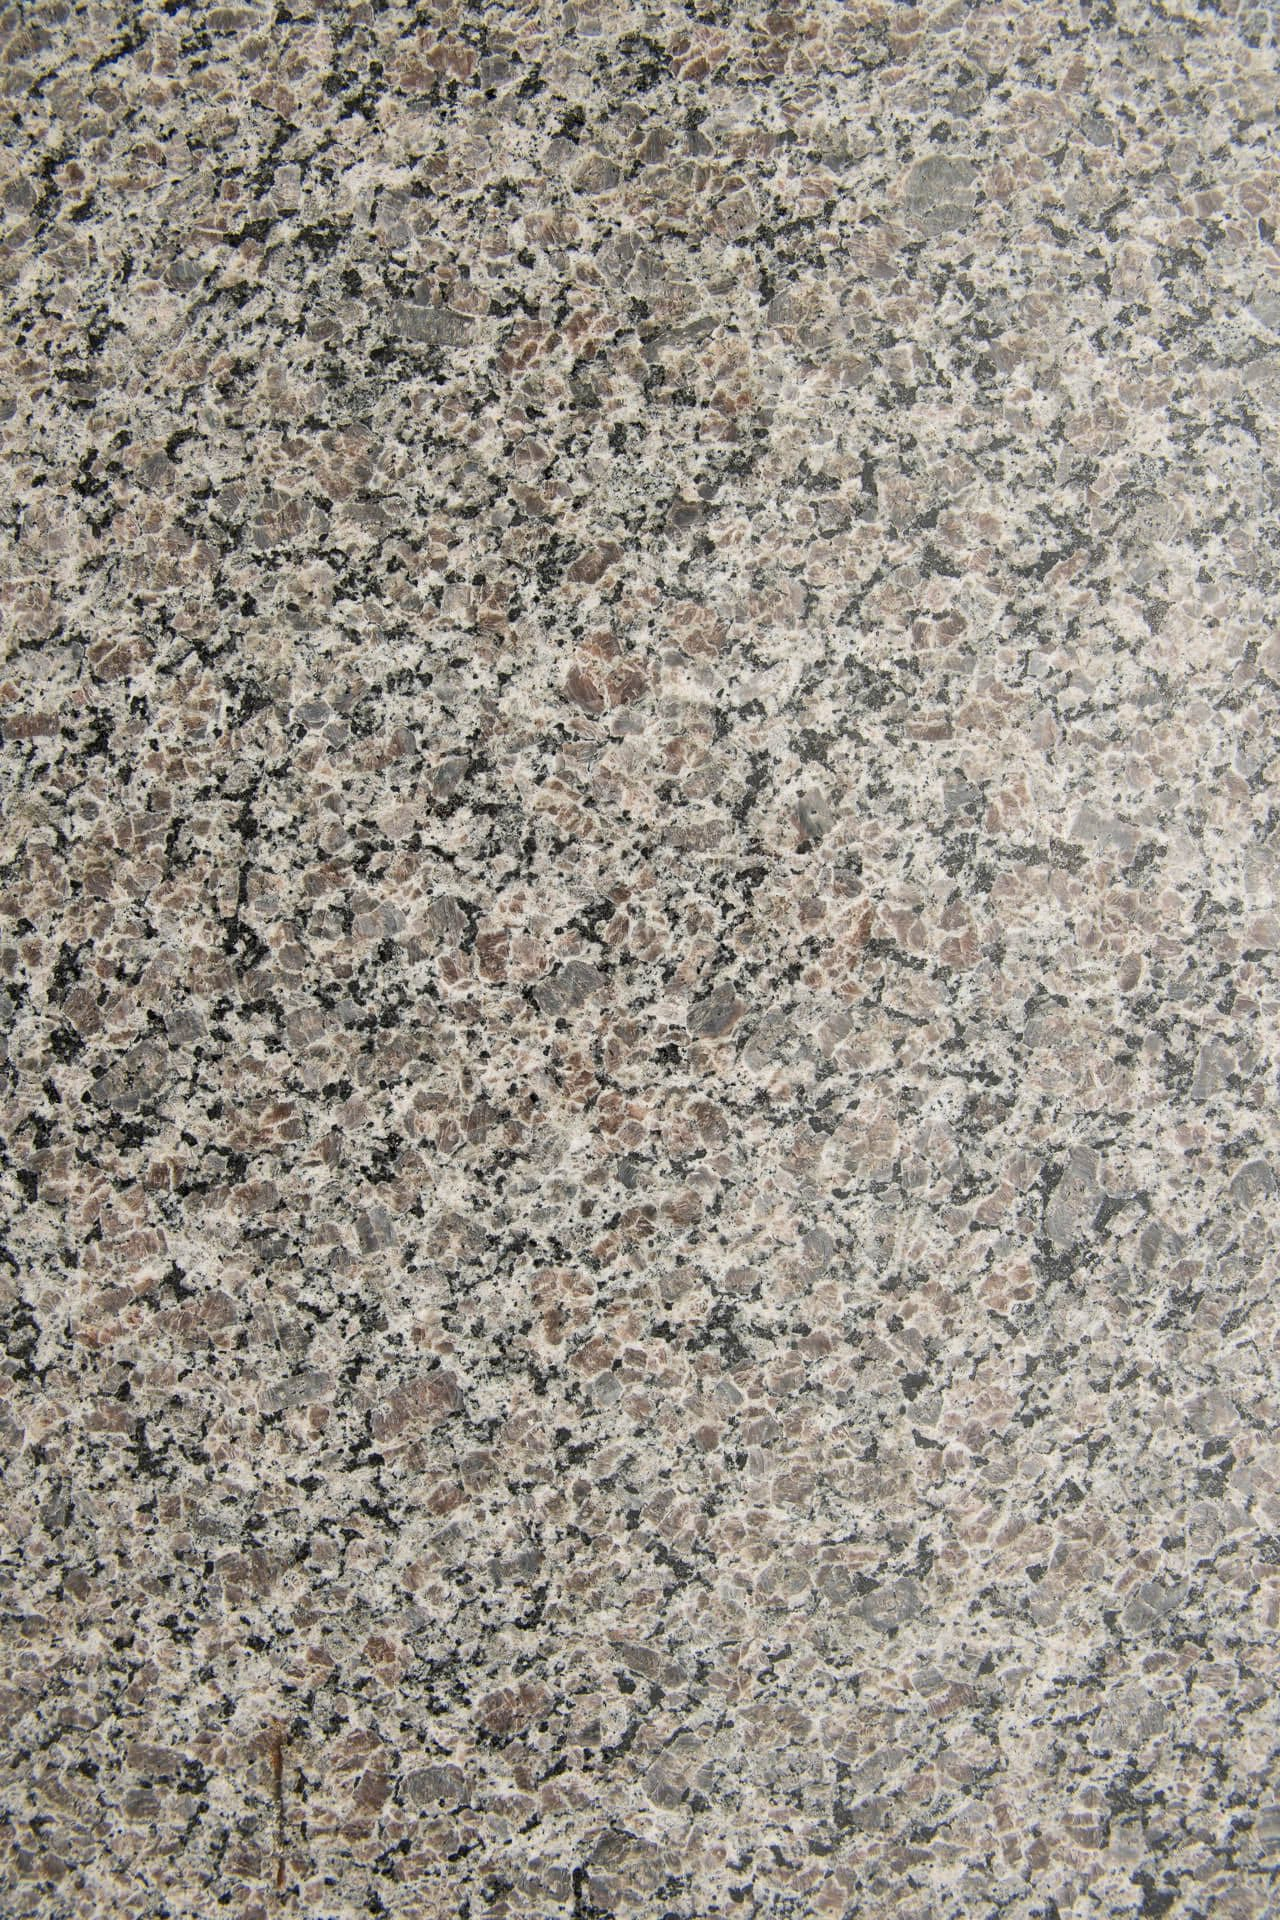 new caledonia cu countertop - by Magnolia Countertops. A Countertop fabricator of Granite Countertops, Marble Countertops, and Quartz Countertops in Cookeville and Crossville TN.